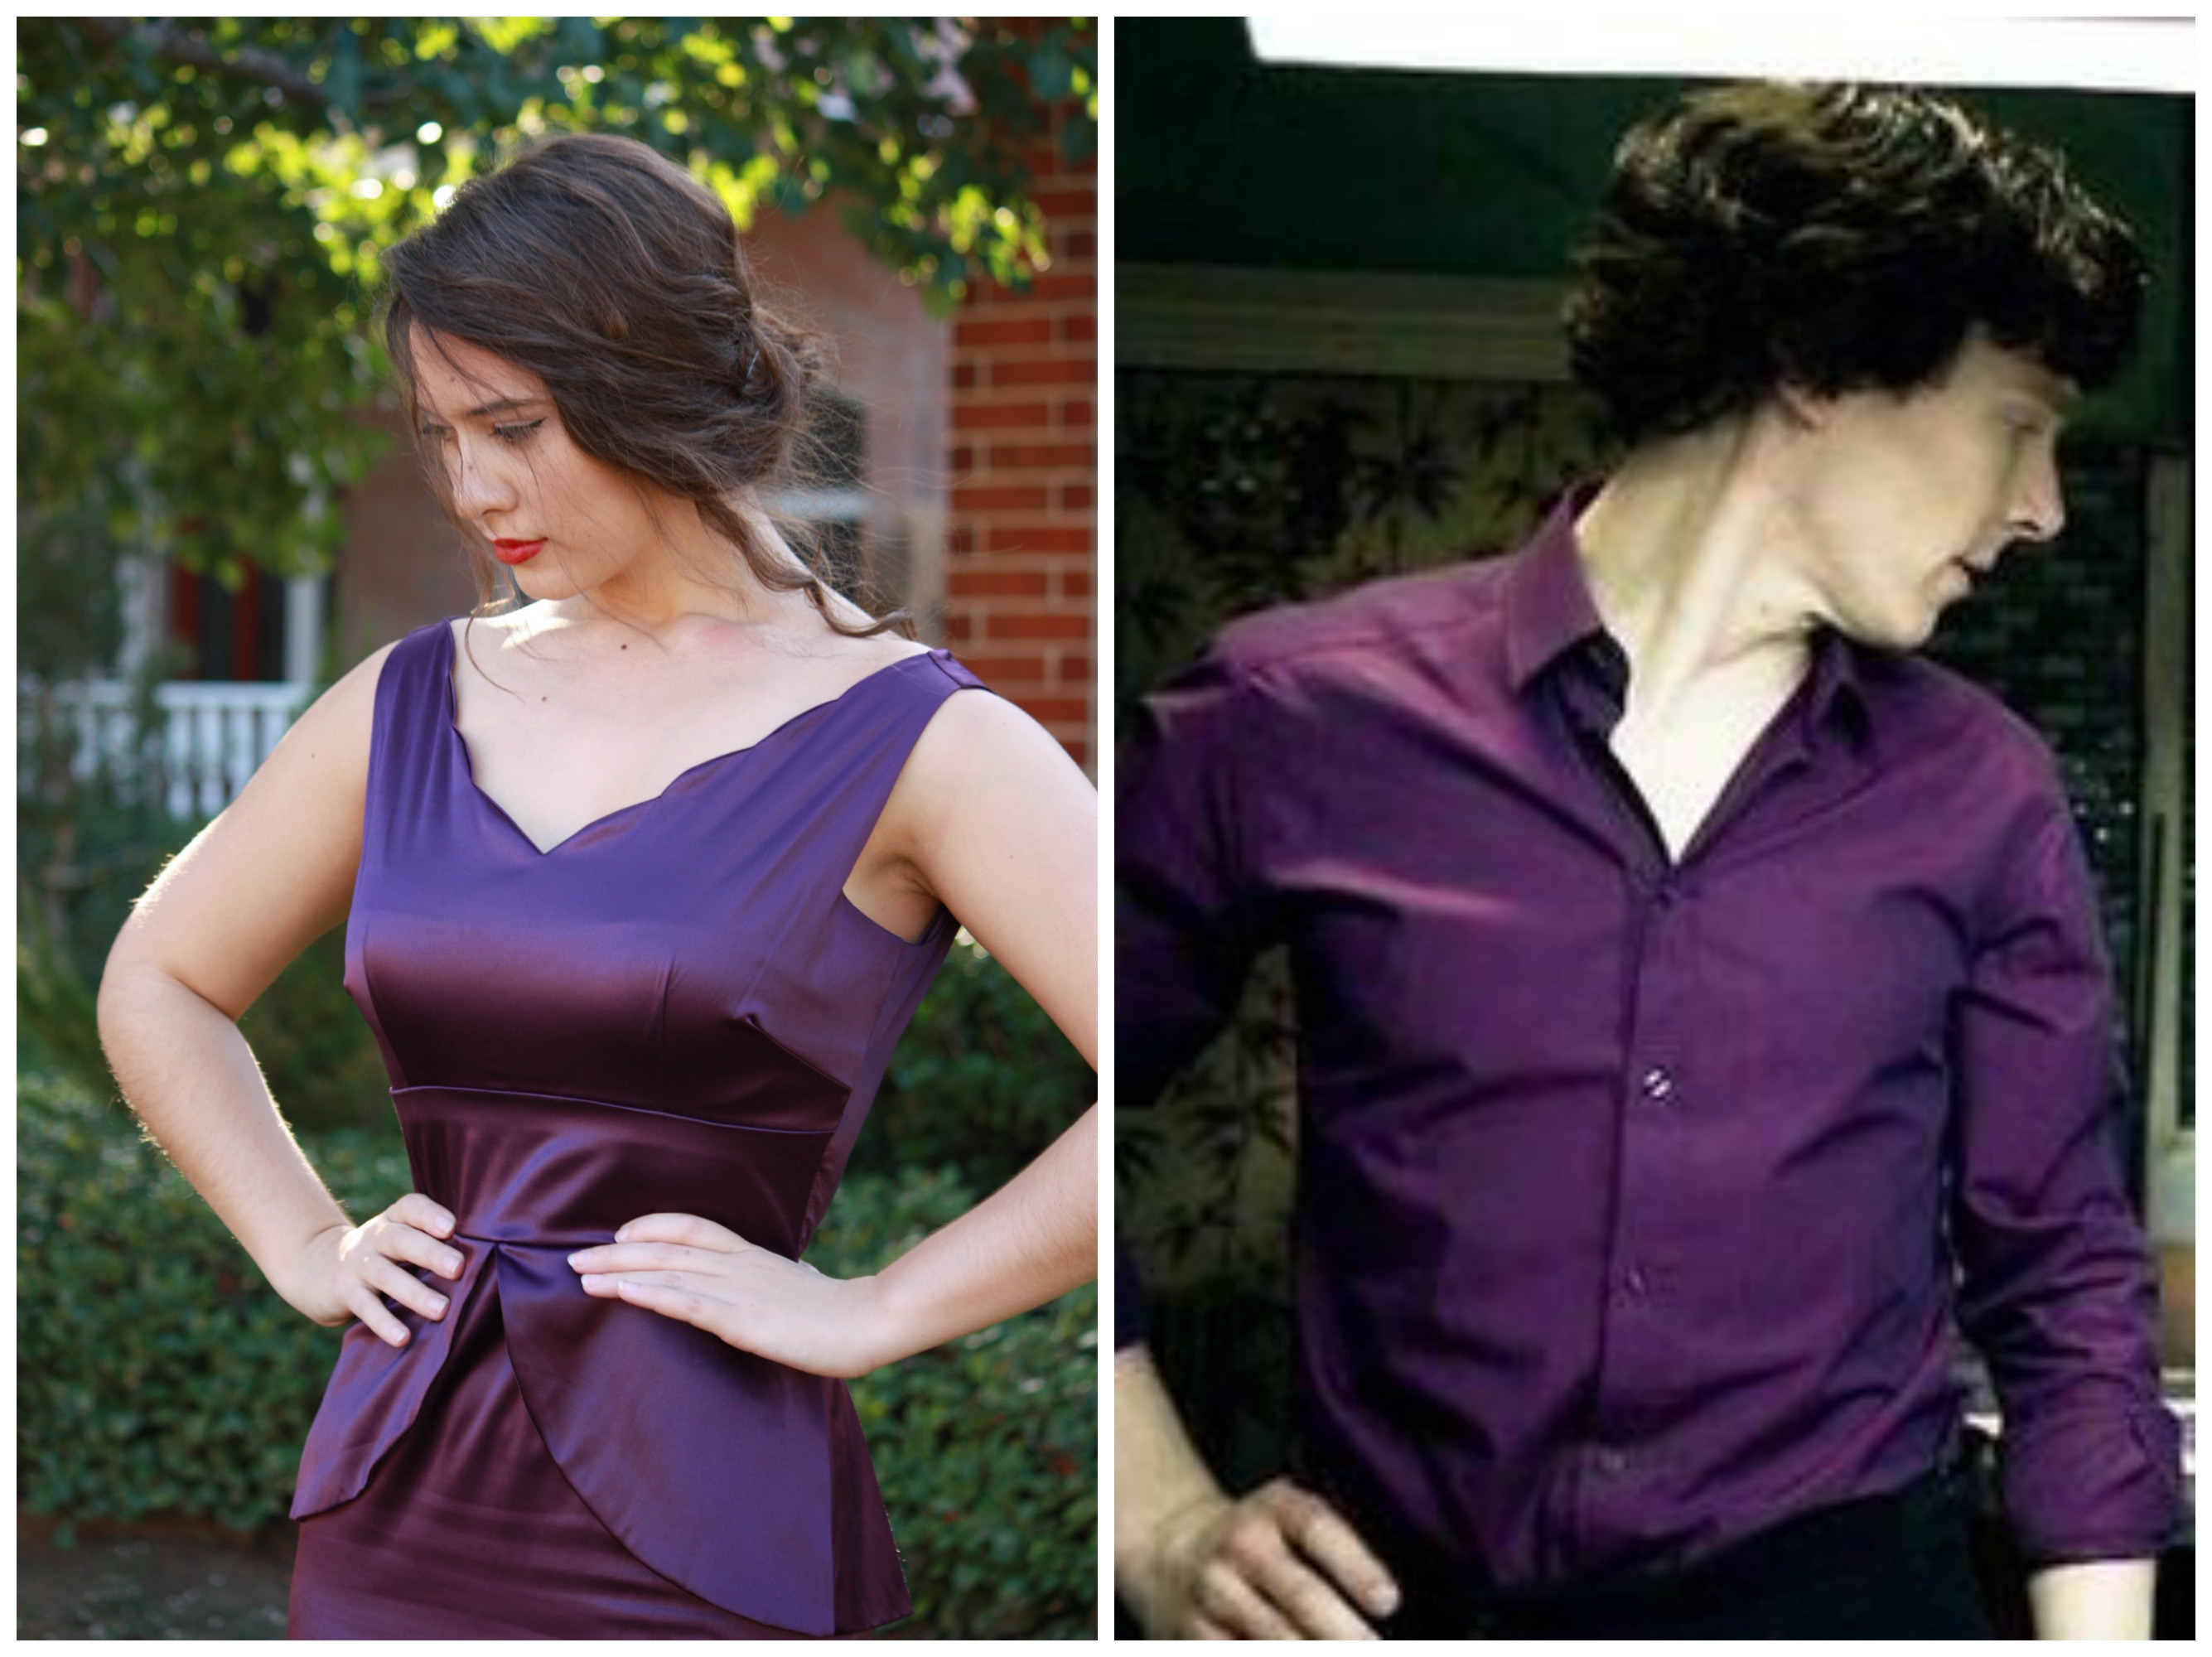 Purple shirt of sexiness